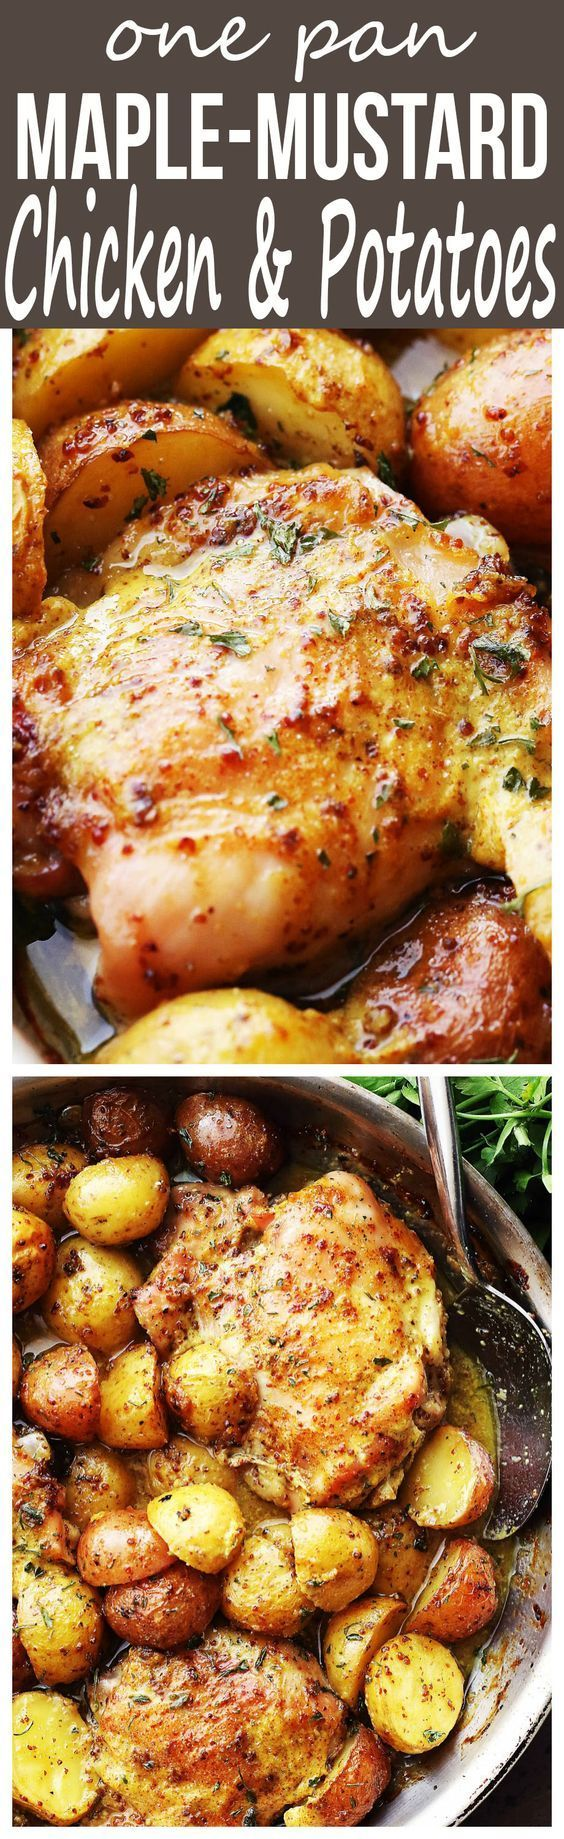 This One Pan Maple Mustard Chicken and Potatoes recipe is an easy and absolutely delicious one pan dinner with chicken thighs and potatoes cooked in an all-natural pure maple syrup and mustard dressing. Perfect for weeknight dinner, meal prep and the holidays!